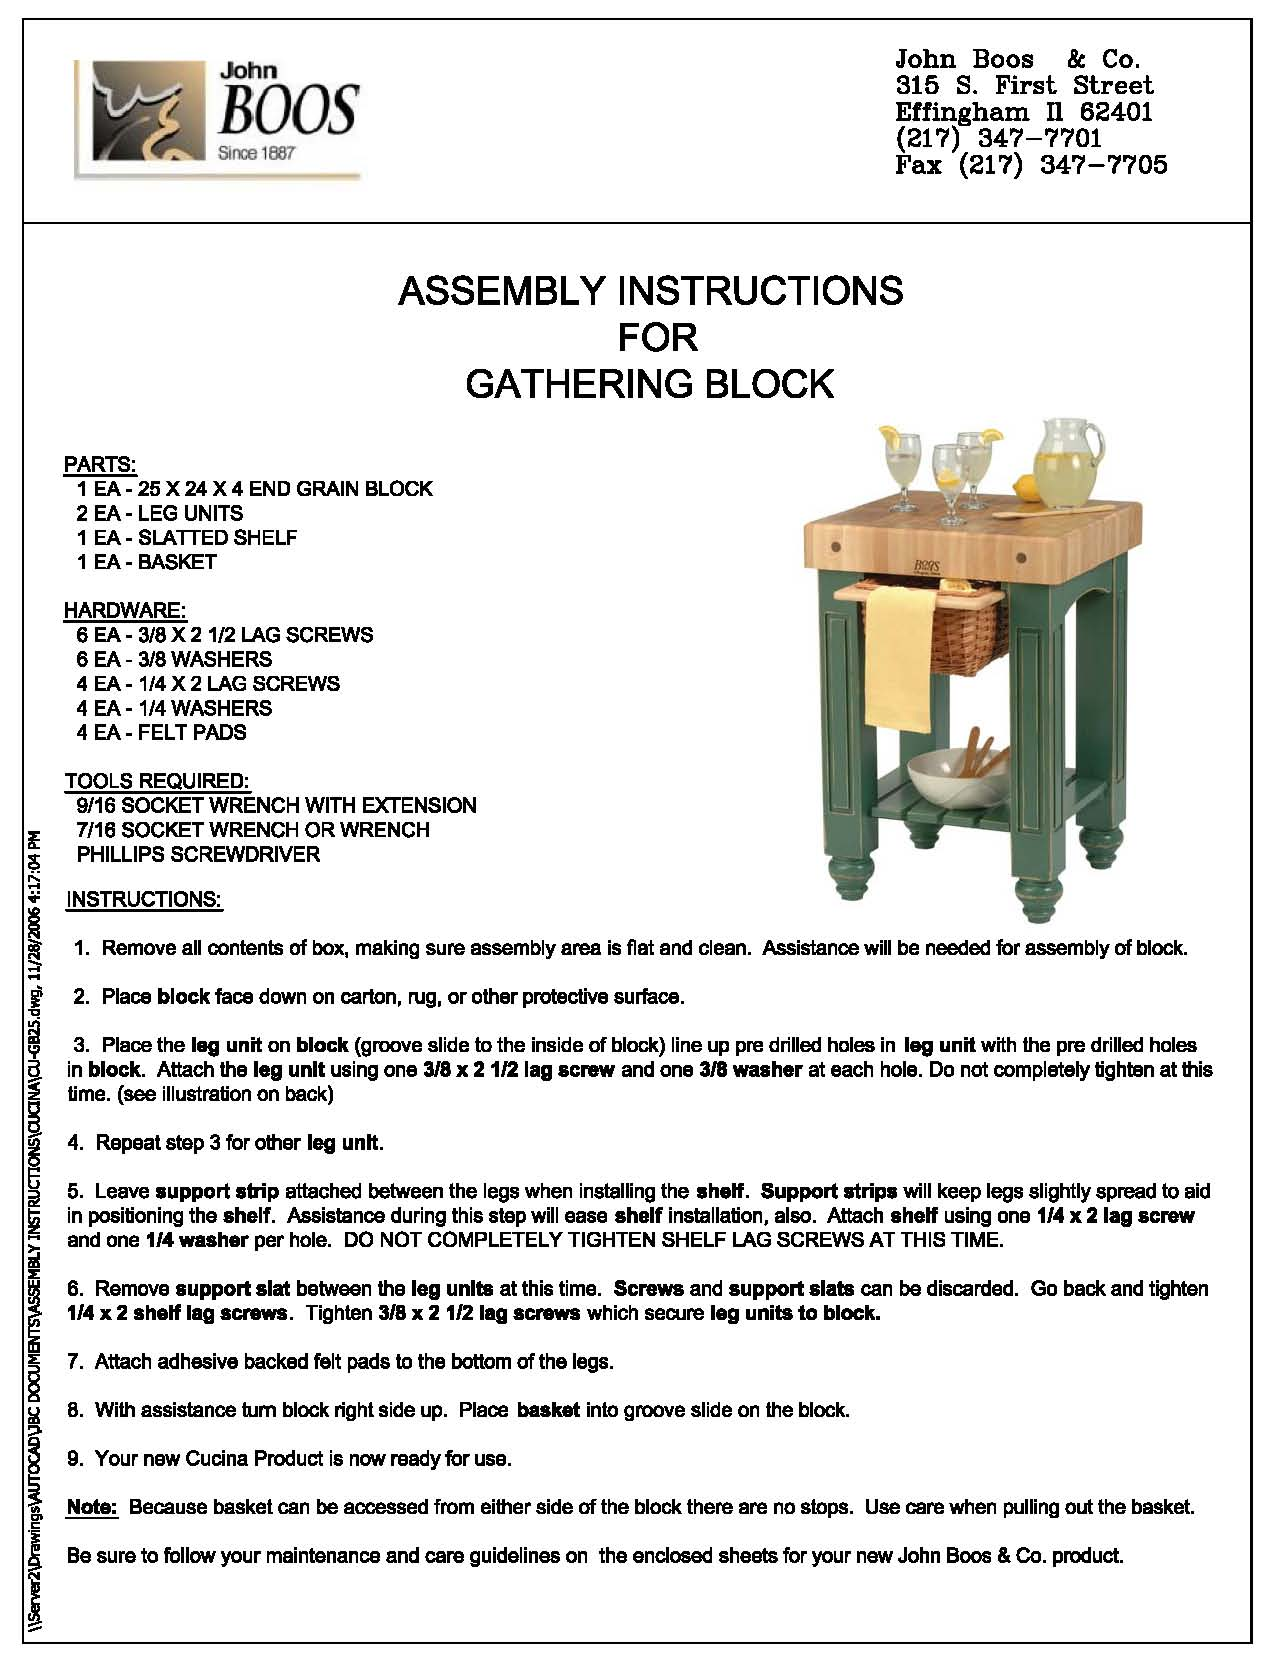 Gathering Block Instructions